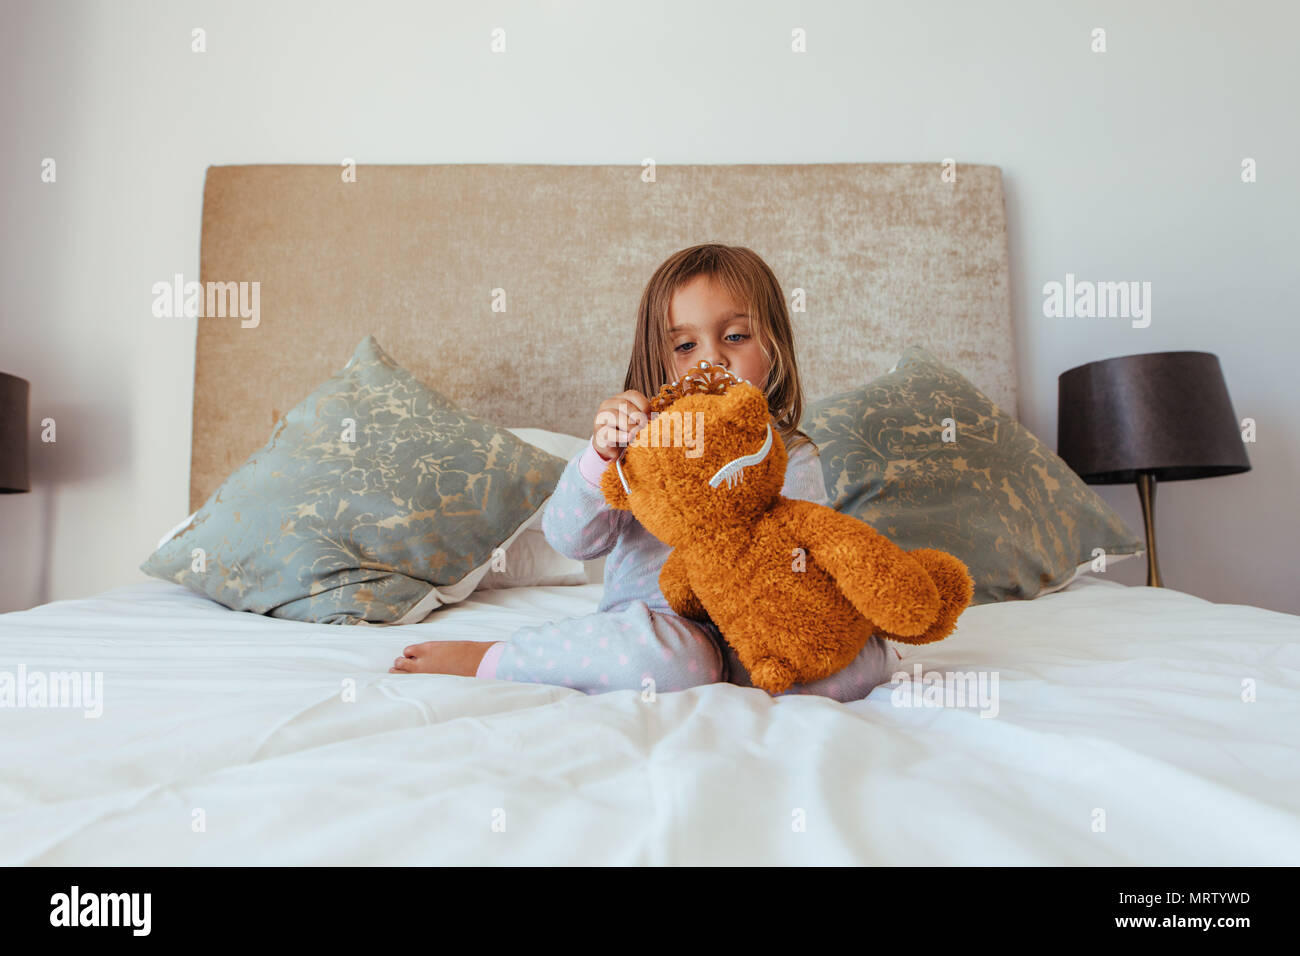 Cute little baby girl putting a crown on her teddy bear. Innocent girl child playing with her soft toy. - Stock Image